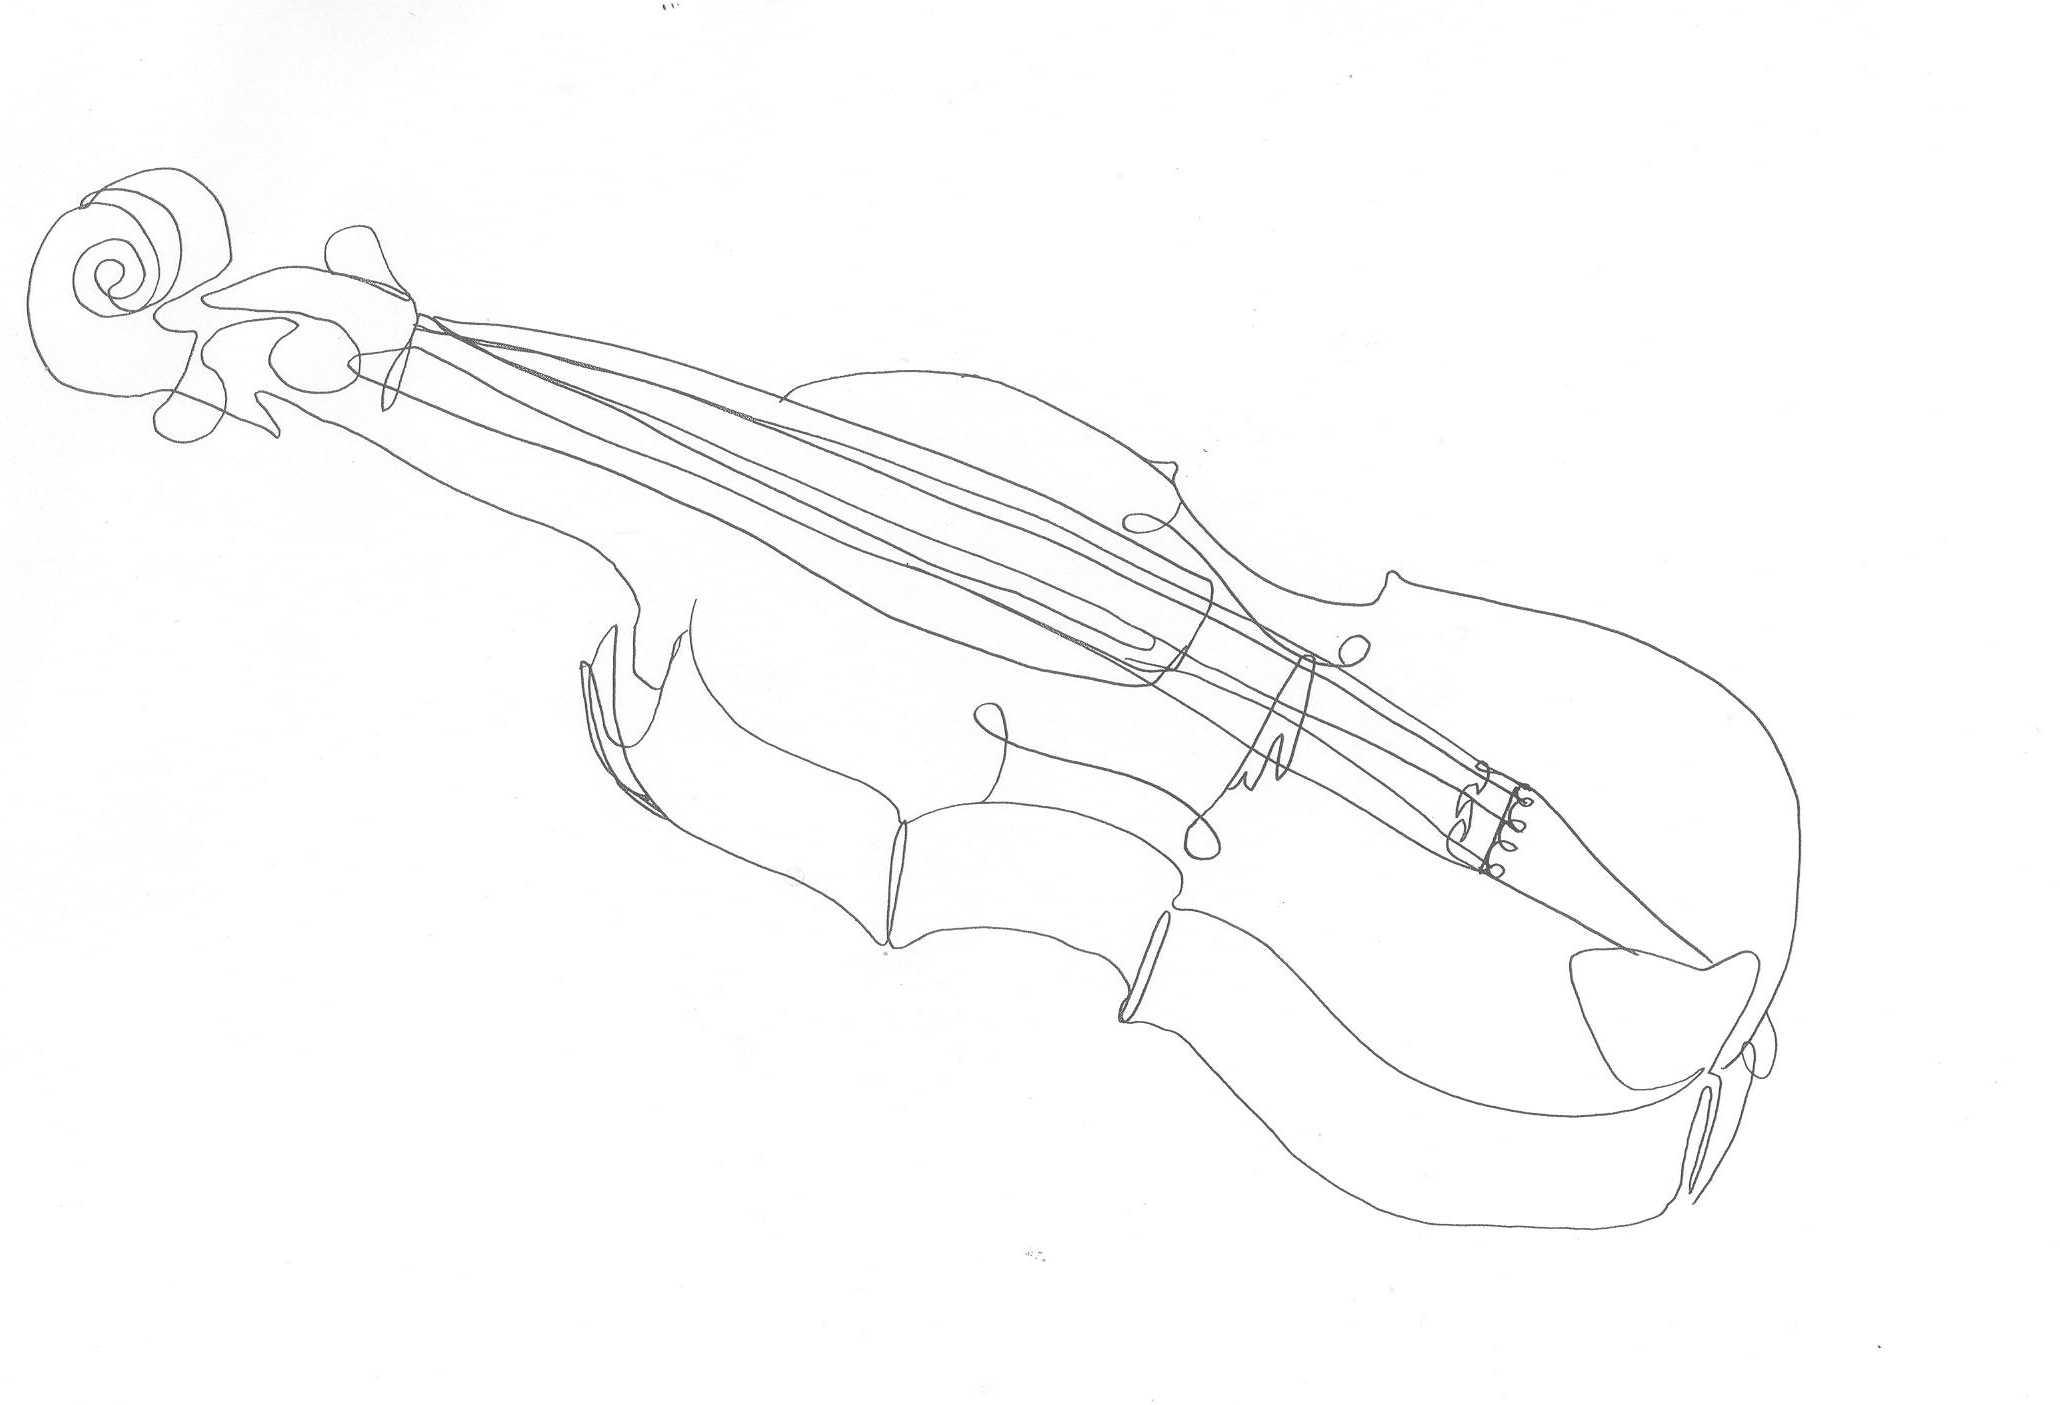 Drawing Smooth Lines Reddit : One line drawing violin by crazyoldwoman on deviantart